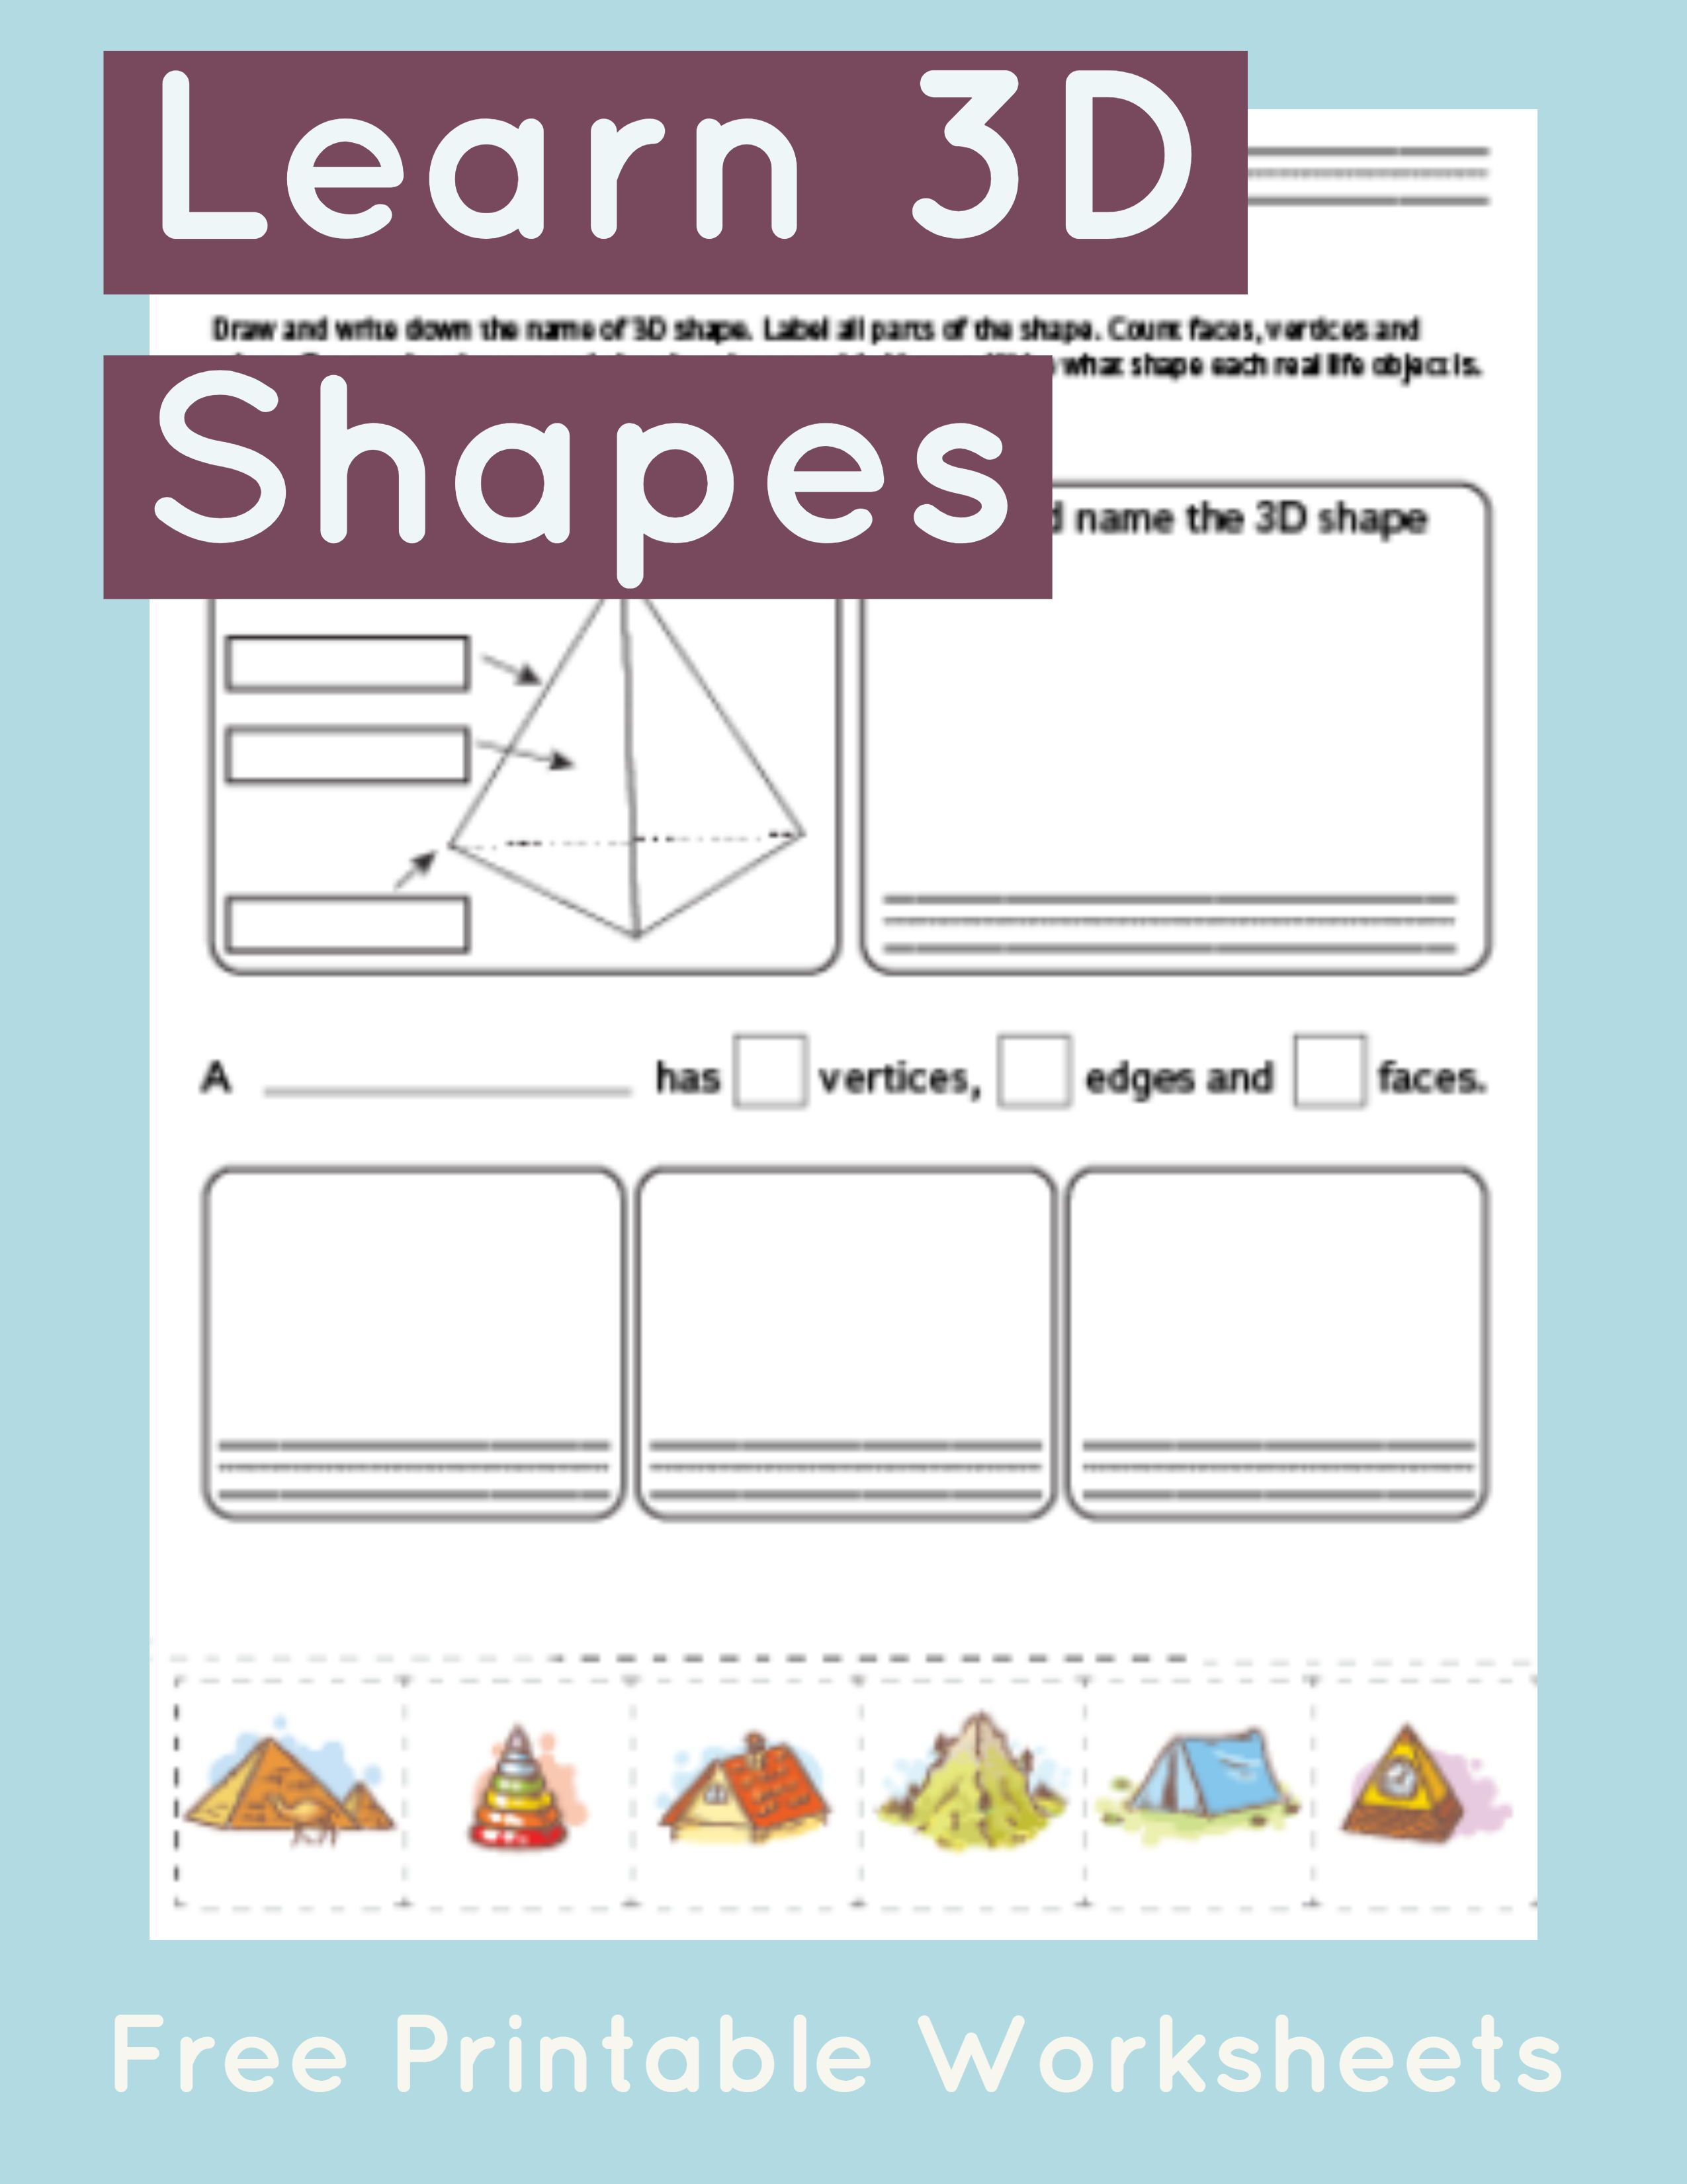 small resolution of 3d Shapes Faces Edges Vertices Worksheet   Printable Worksheets and  Activities for Teachers